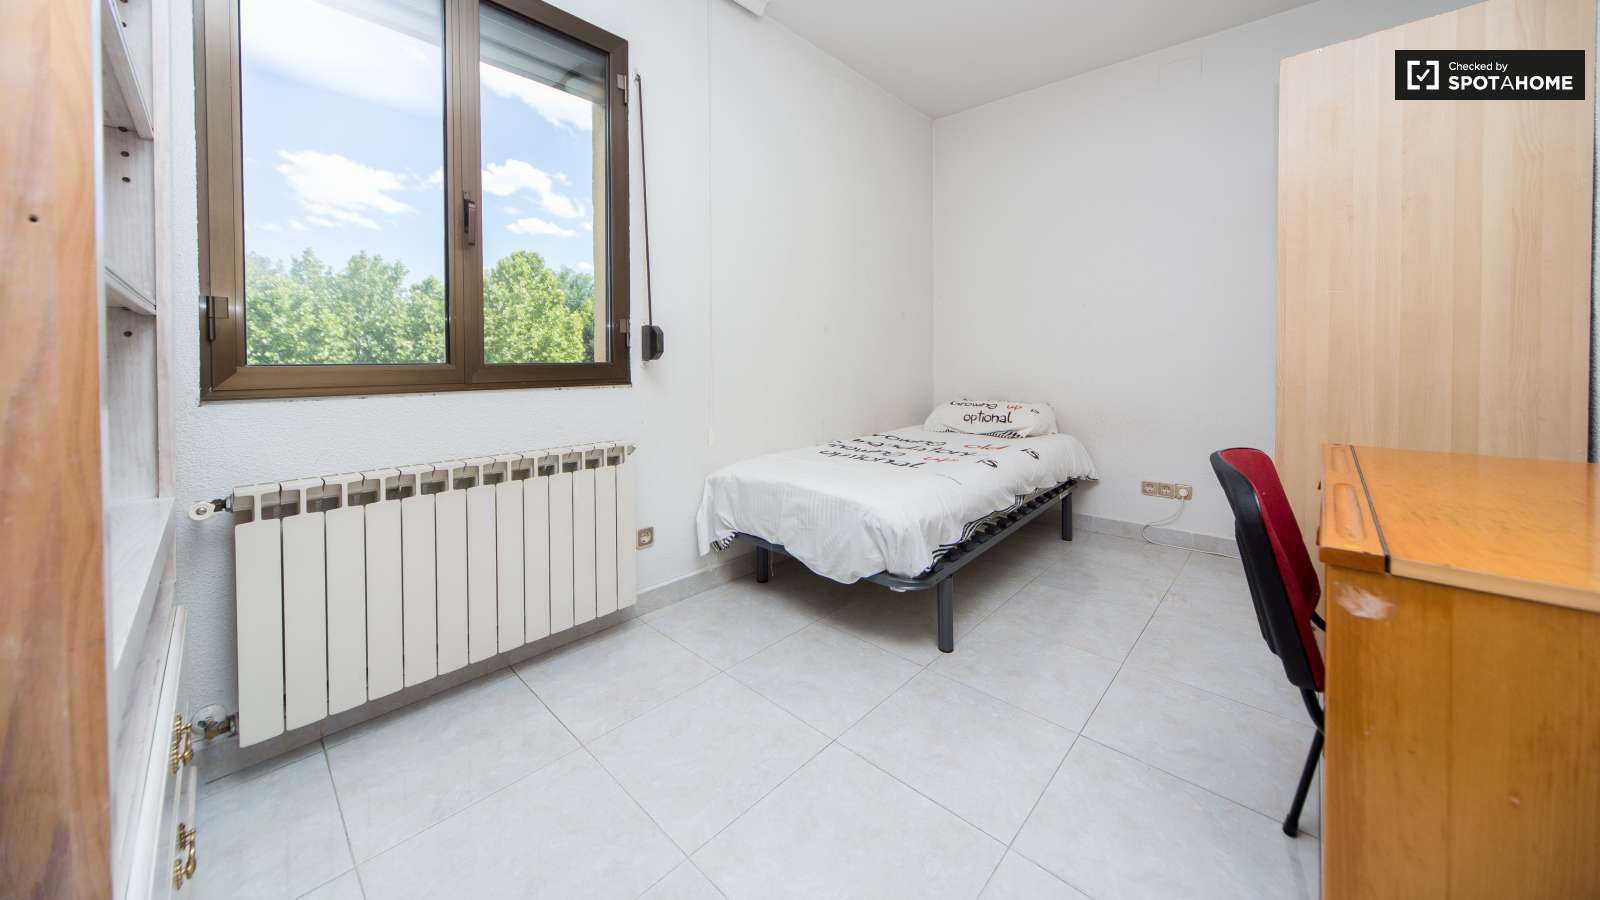 Single Bed Bedroom Double Bed In Rooms In Great 5 Bedroom Apartment Near Metro Oporto